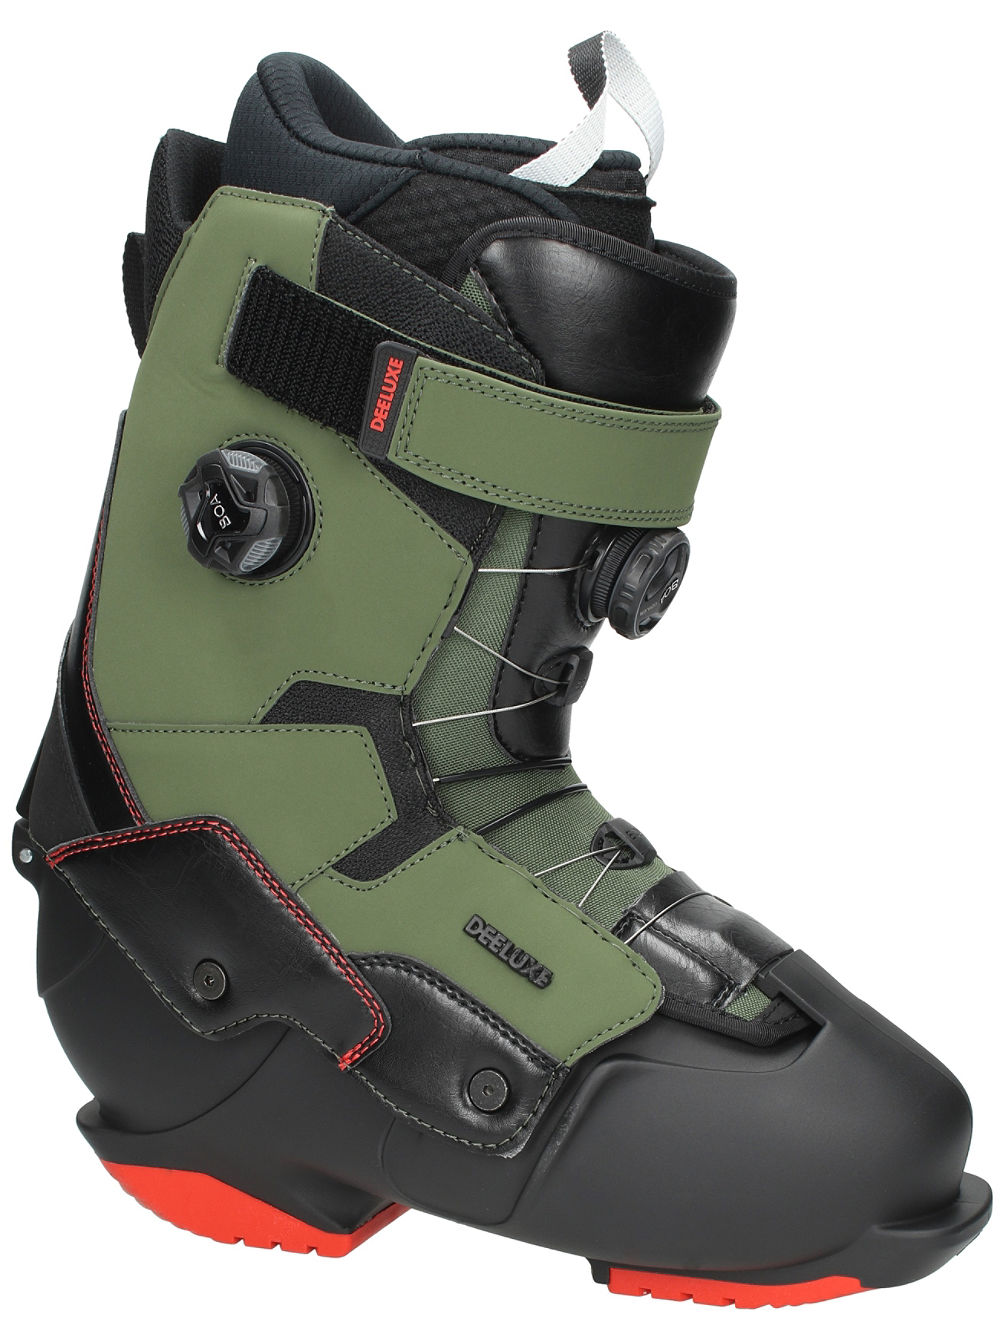 Ground Control Snowboard Boots